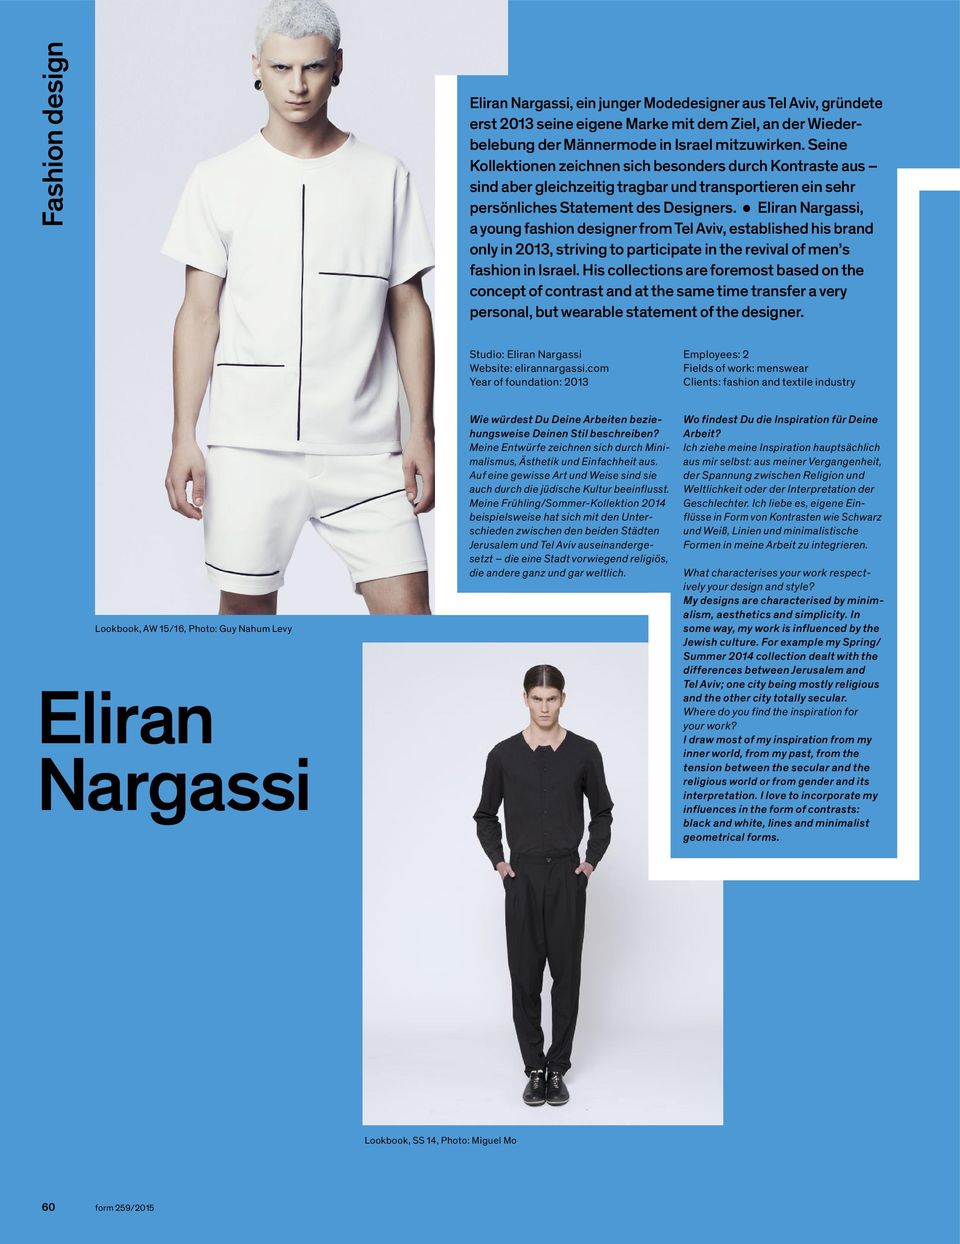 Eliran Nargassi, a young fashion designer from, established his brand only in 2013, striving to participate in the revival of men s fashion in Israel.